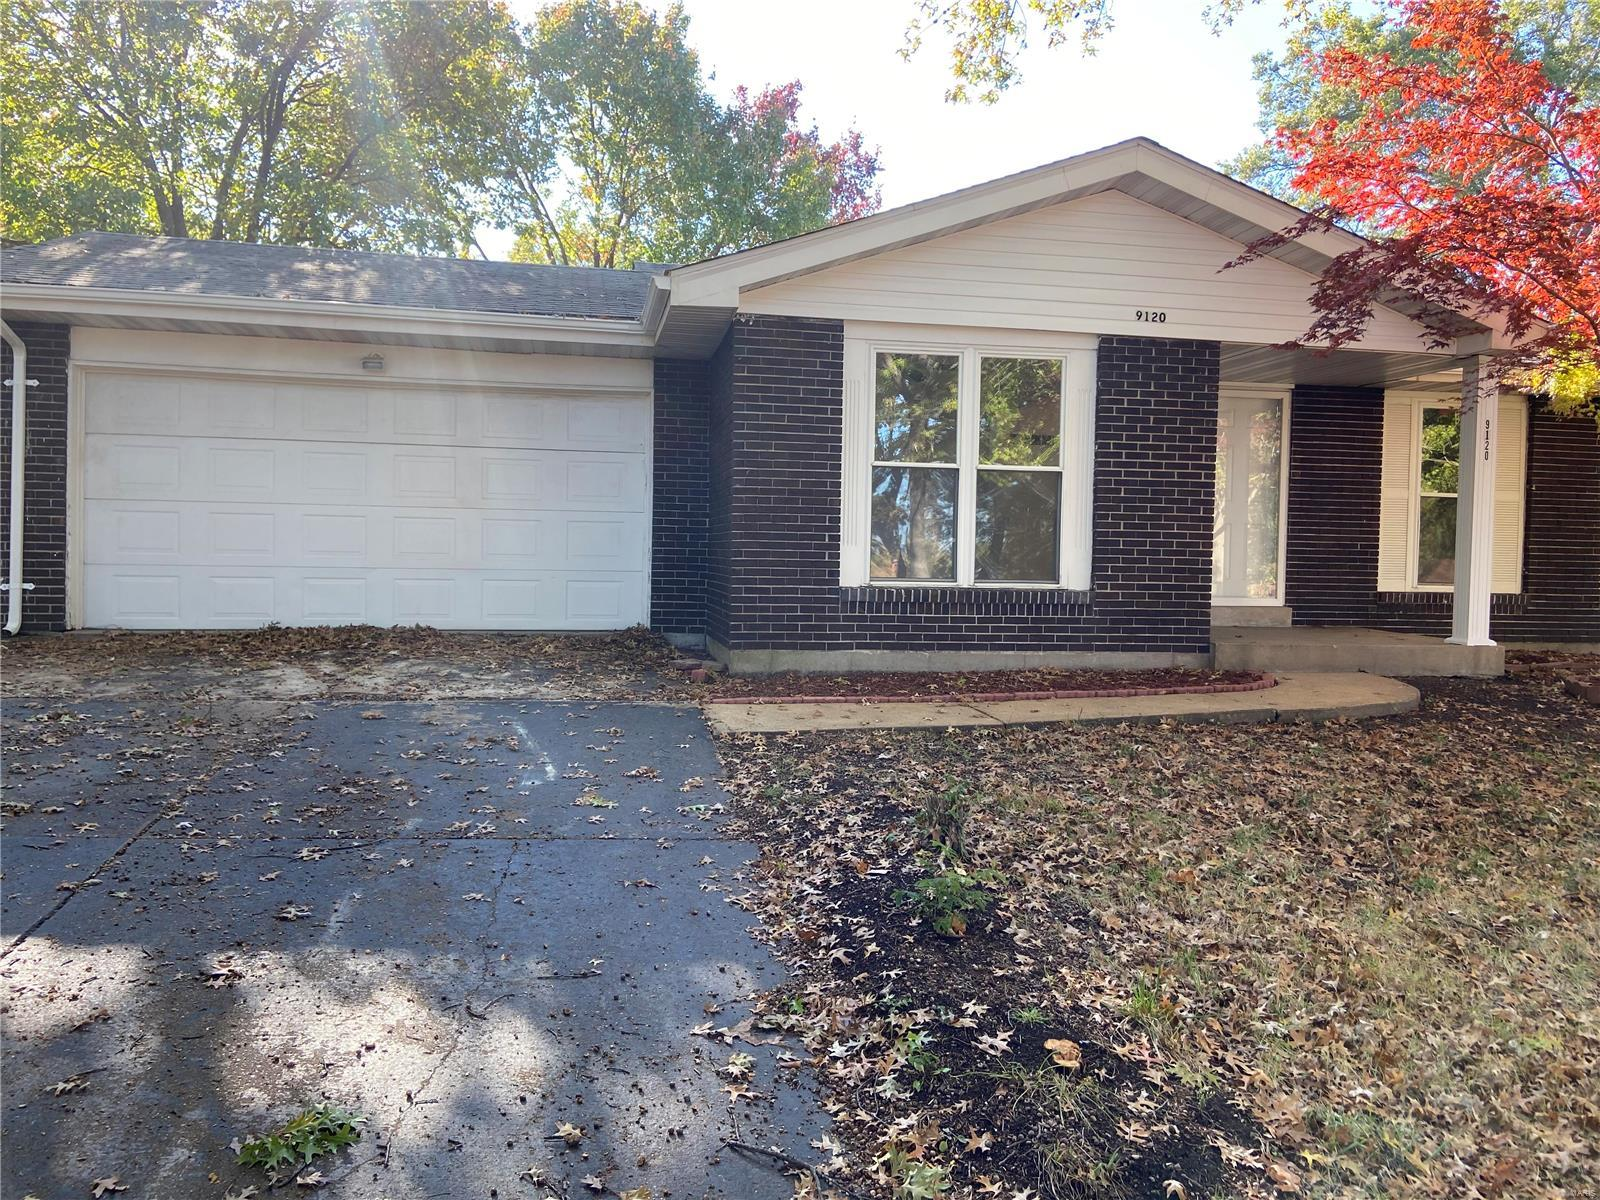 9120 Sumter Drive Property Photo - St Louis, MO real estate listing